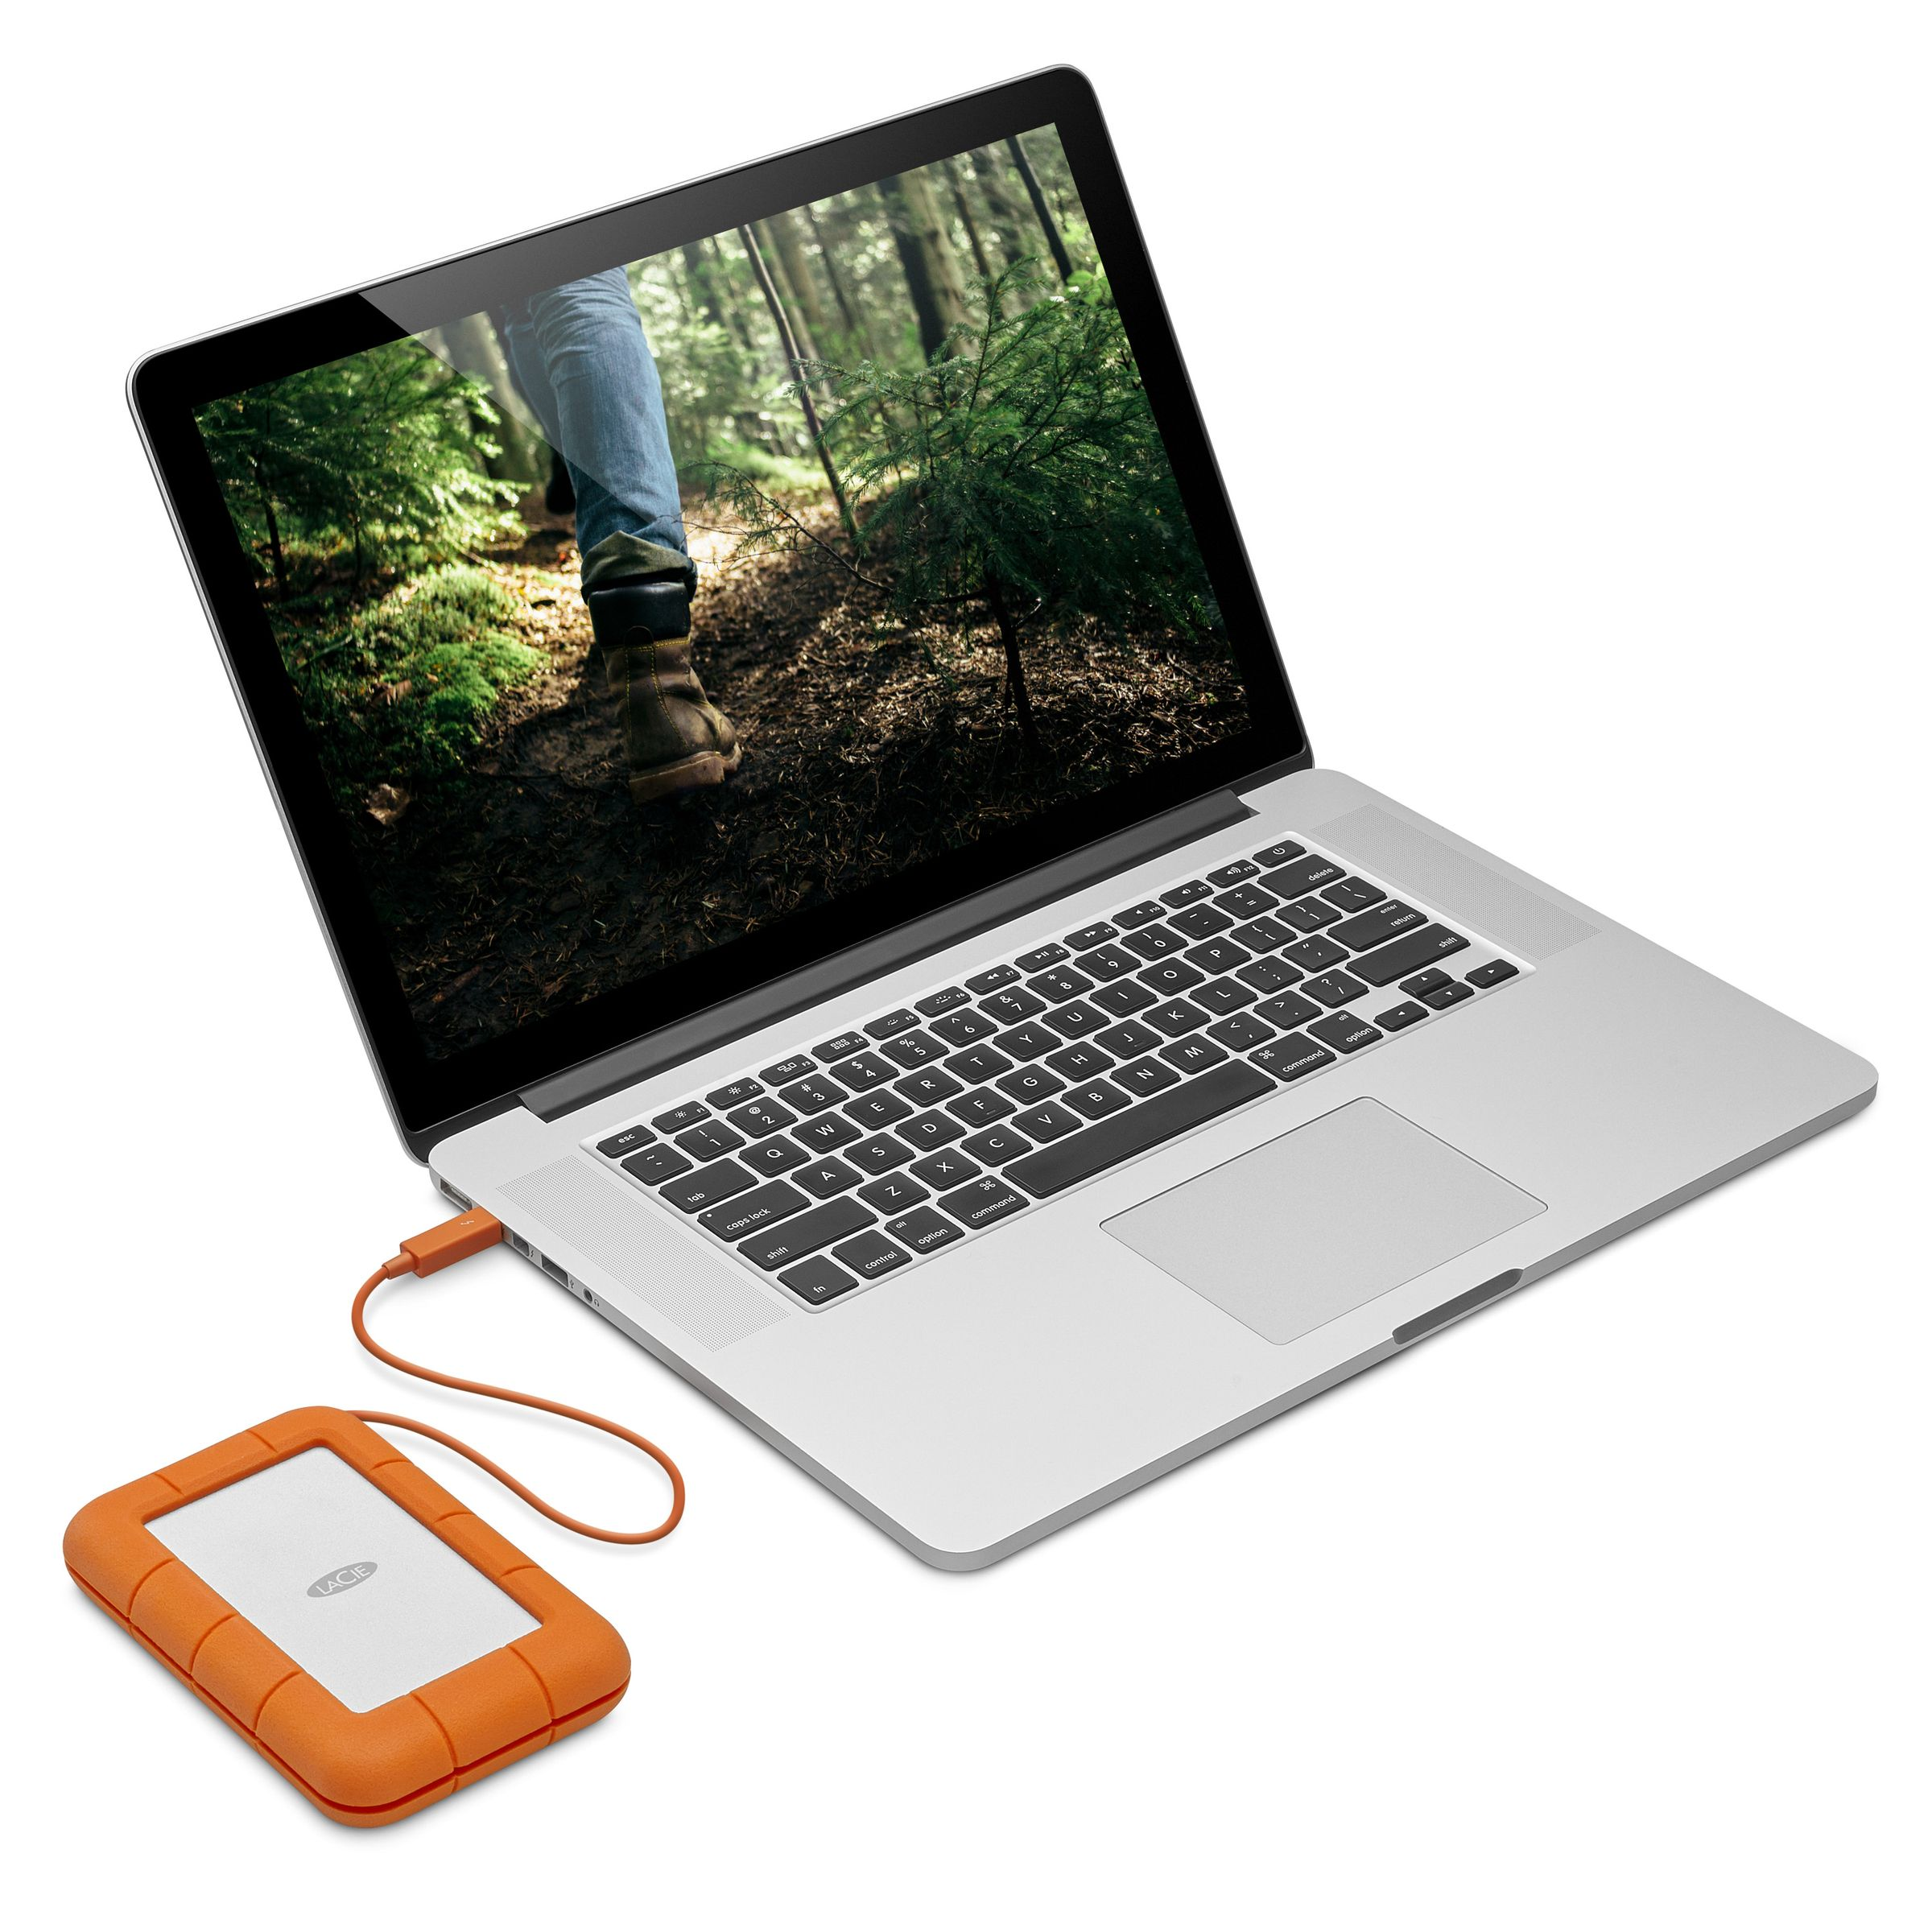 LaCie Rugged Secure All-Terrain Encrypted Storage 2TB - additional image 1